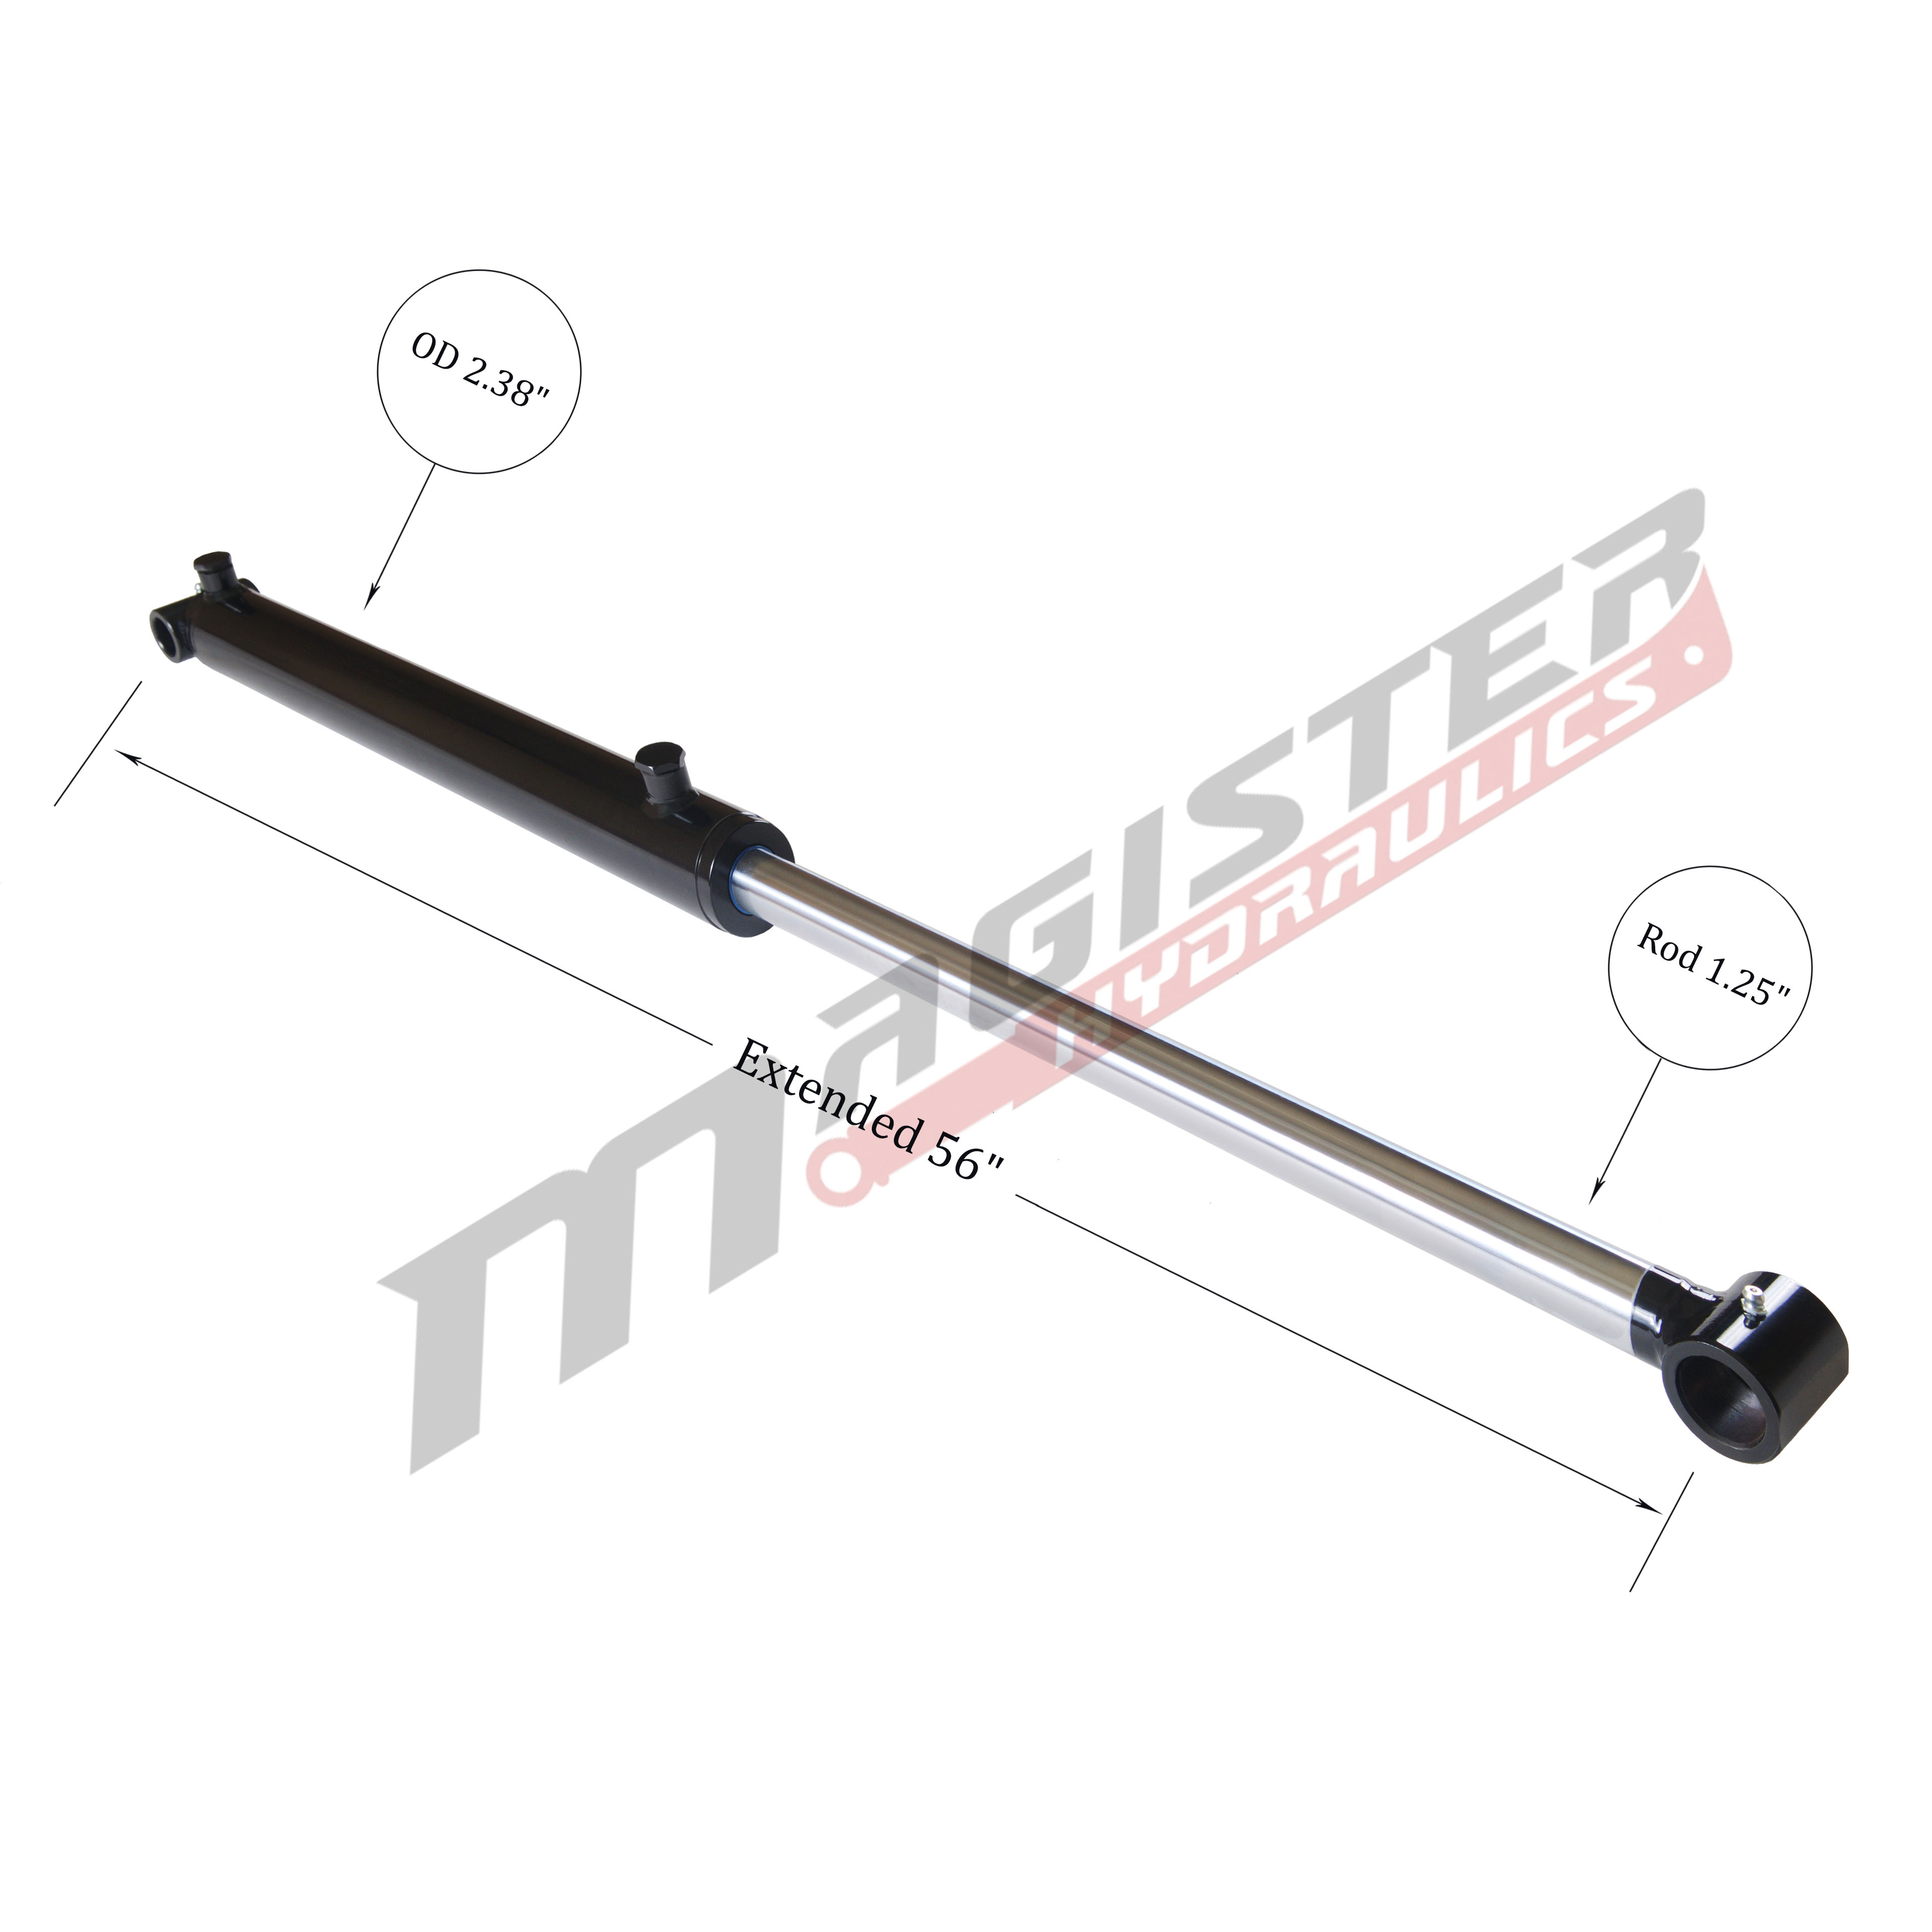 2 bore x 24 stroke hydraulic cylinder, welded cross tube double acting cylinder | Magister Hydraulics